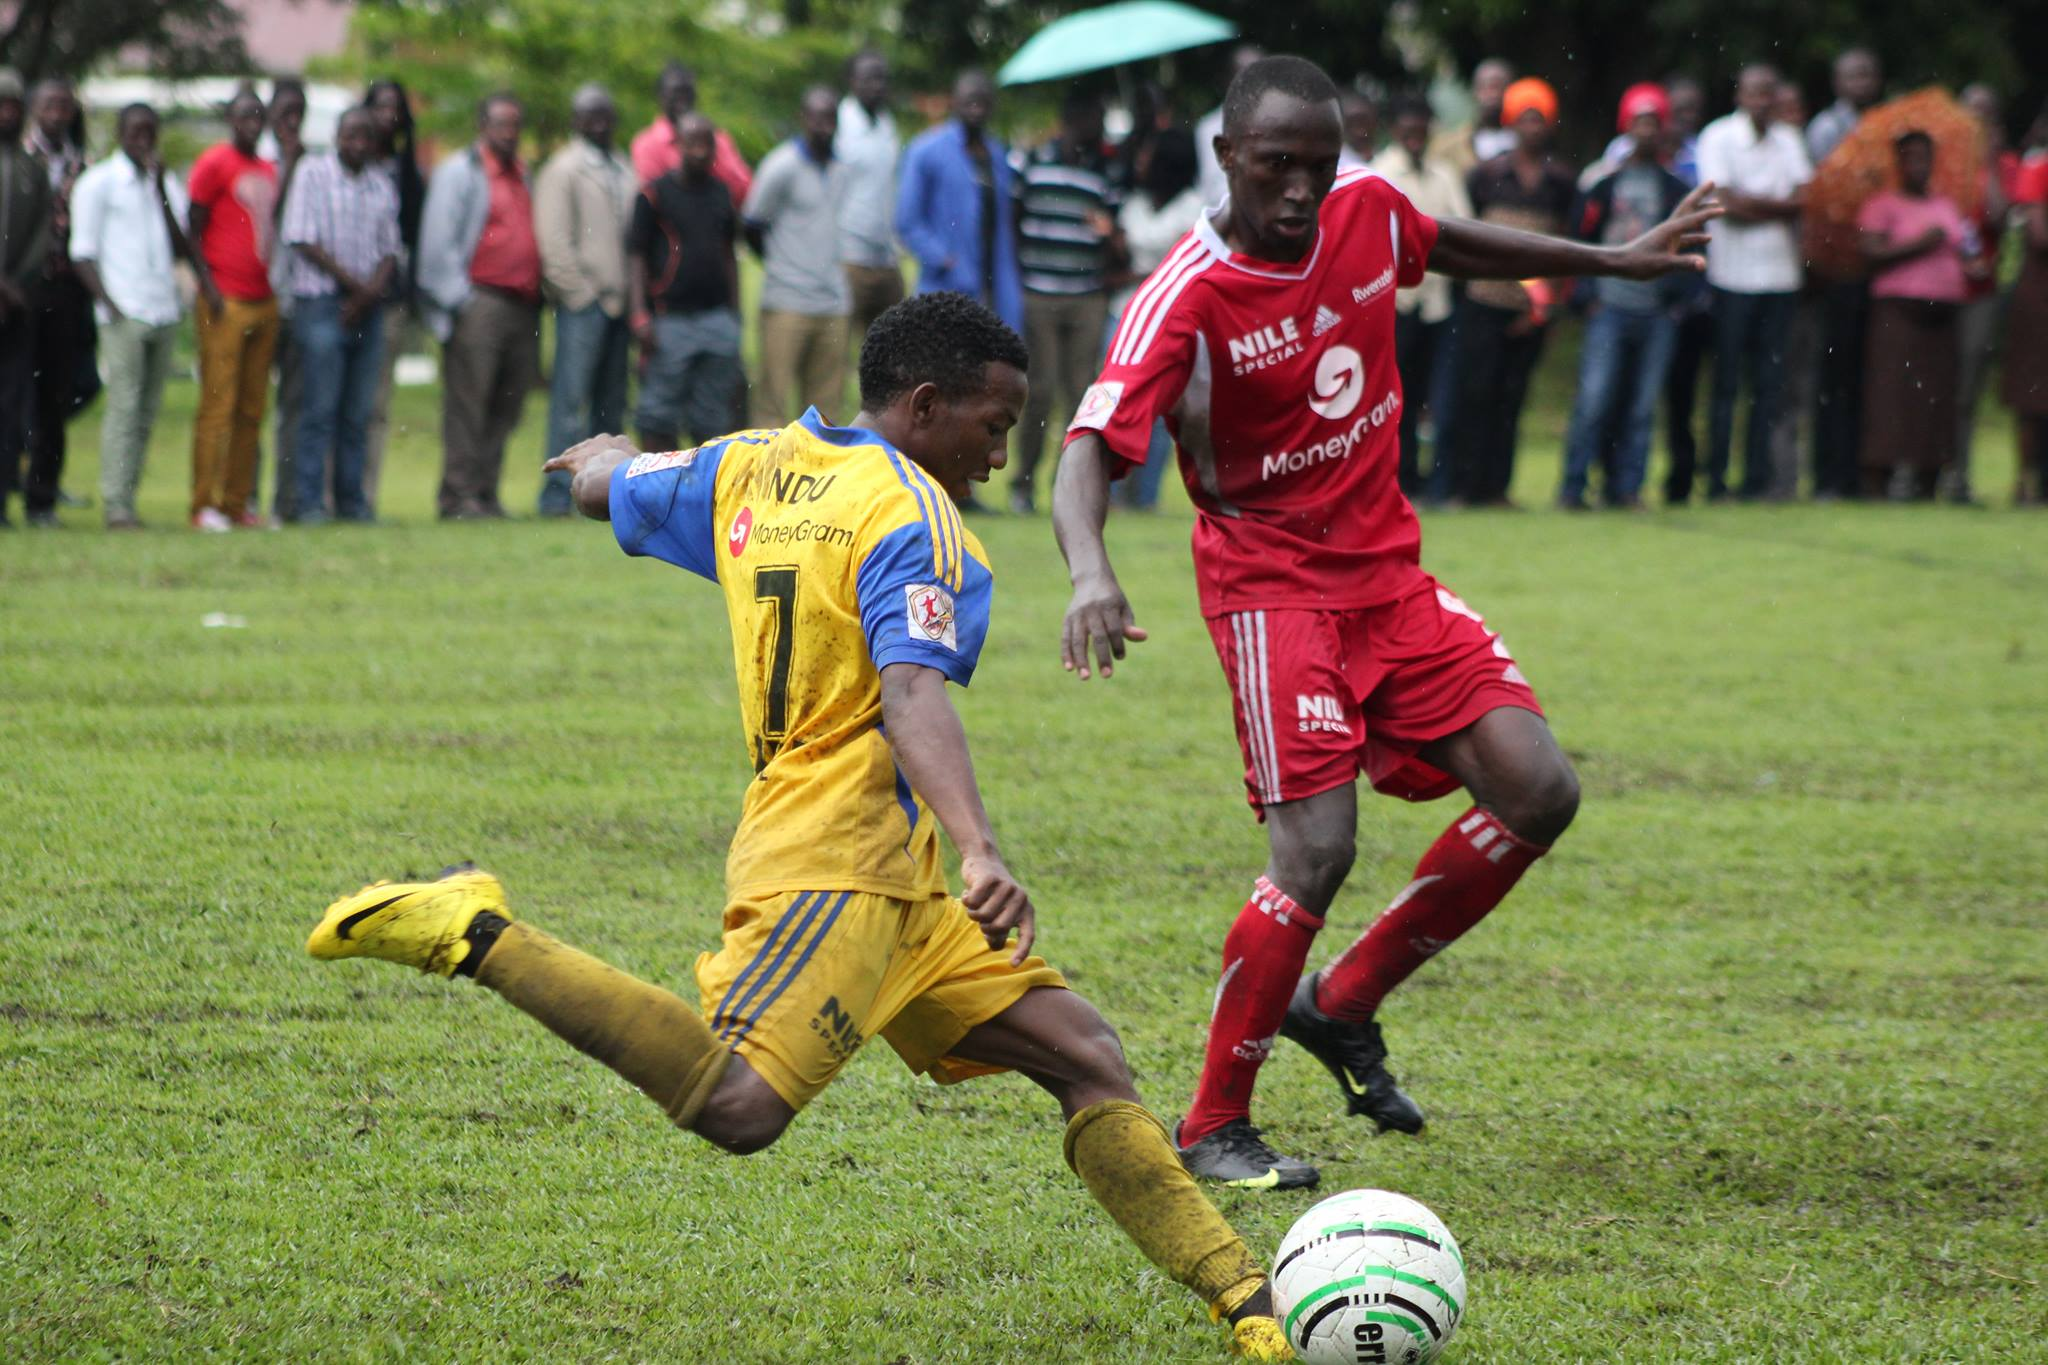 Some of the action in the group stages, Makerere Vs Ndejje